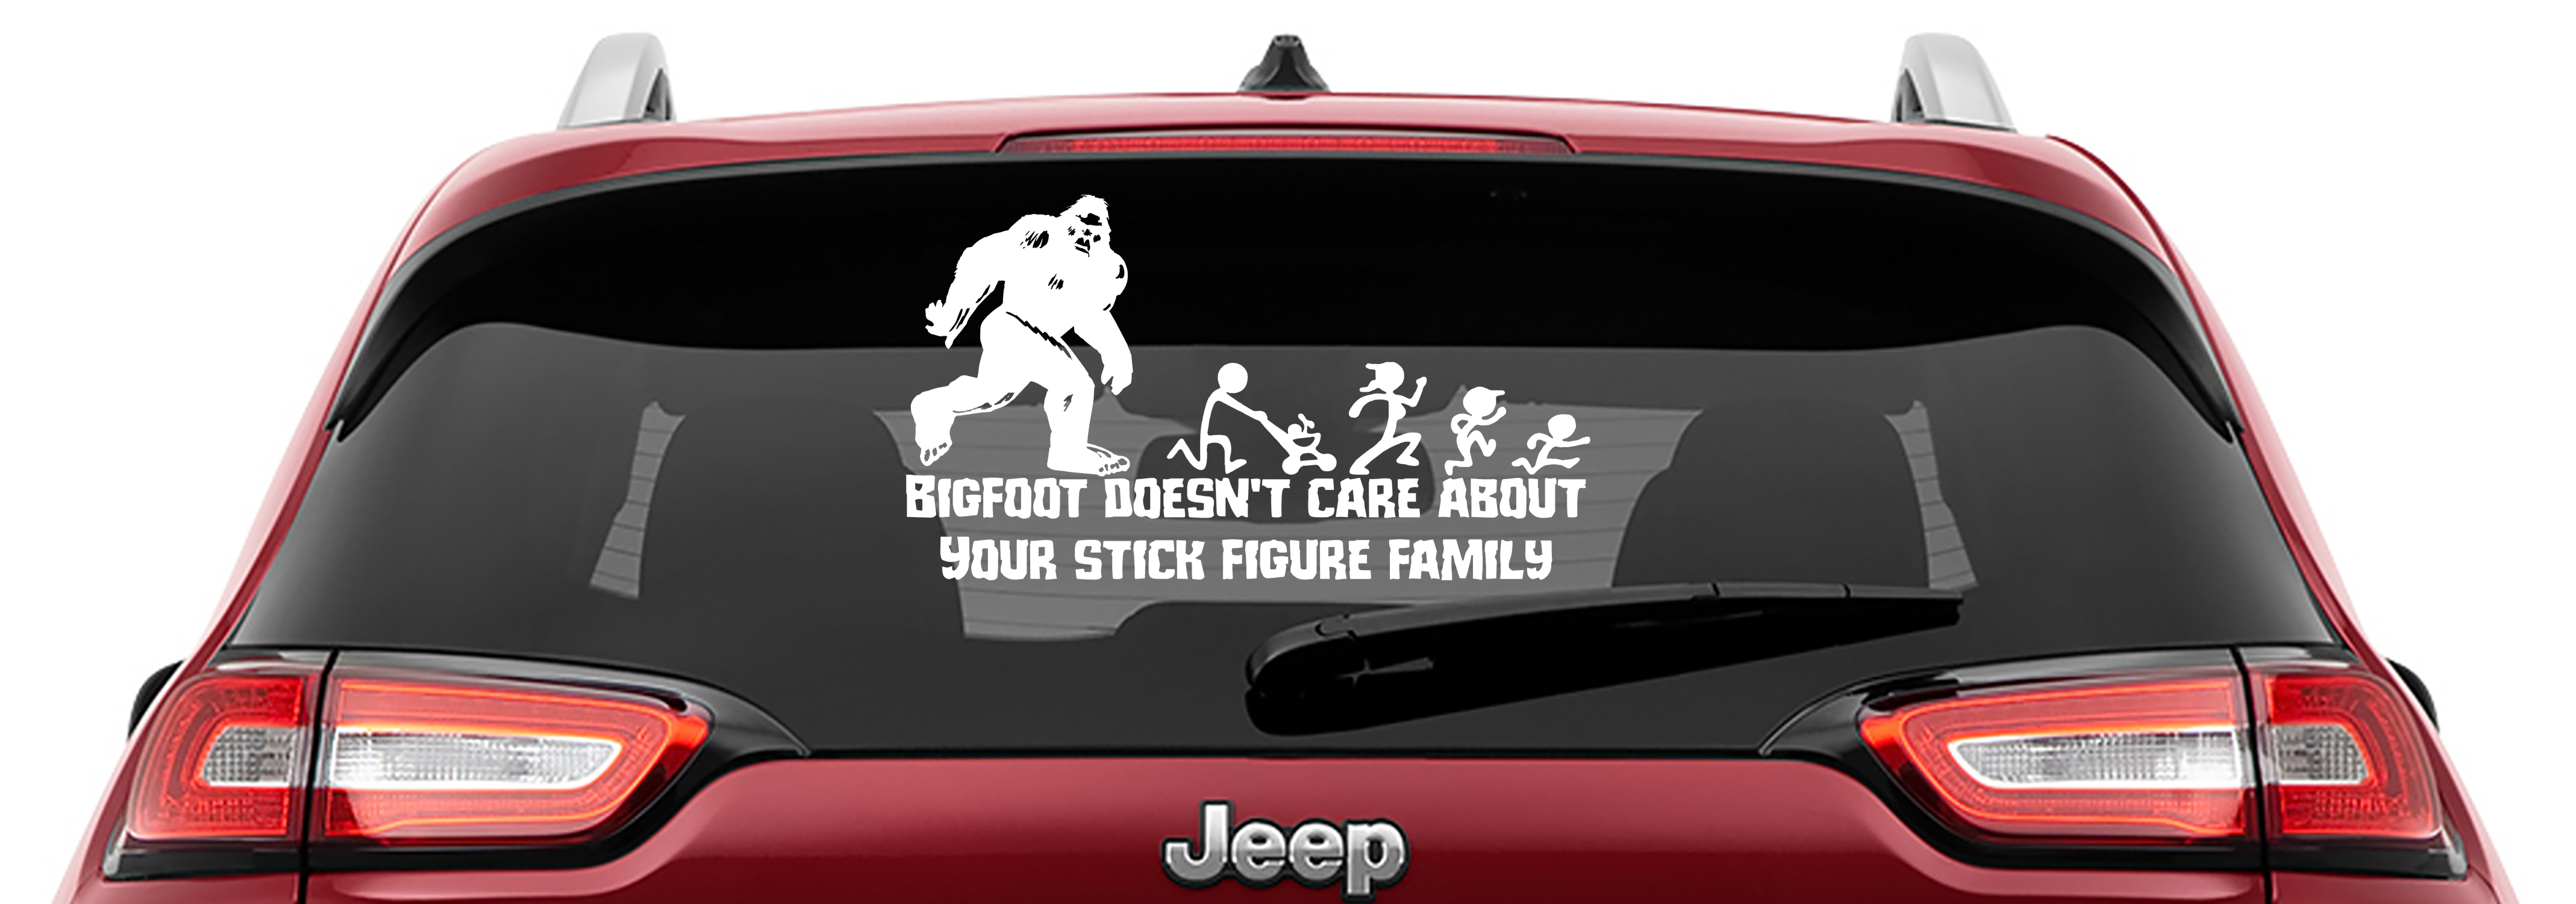 Bigfoot Doesn't Care Your Stick Figure Family Vinyl Decal